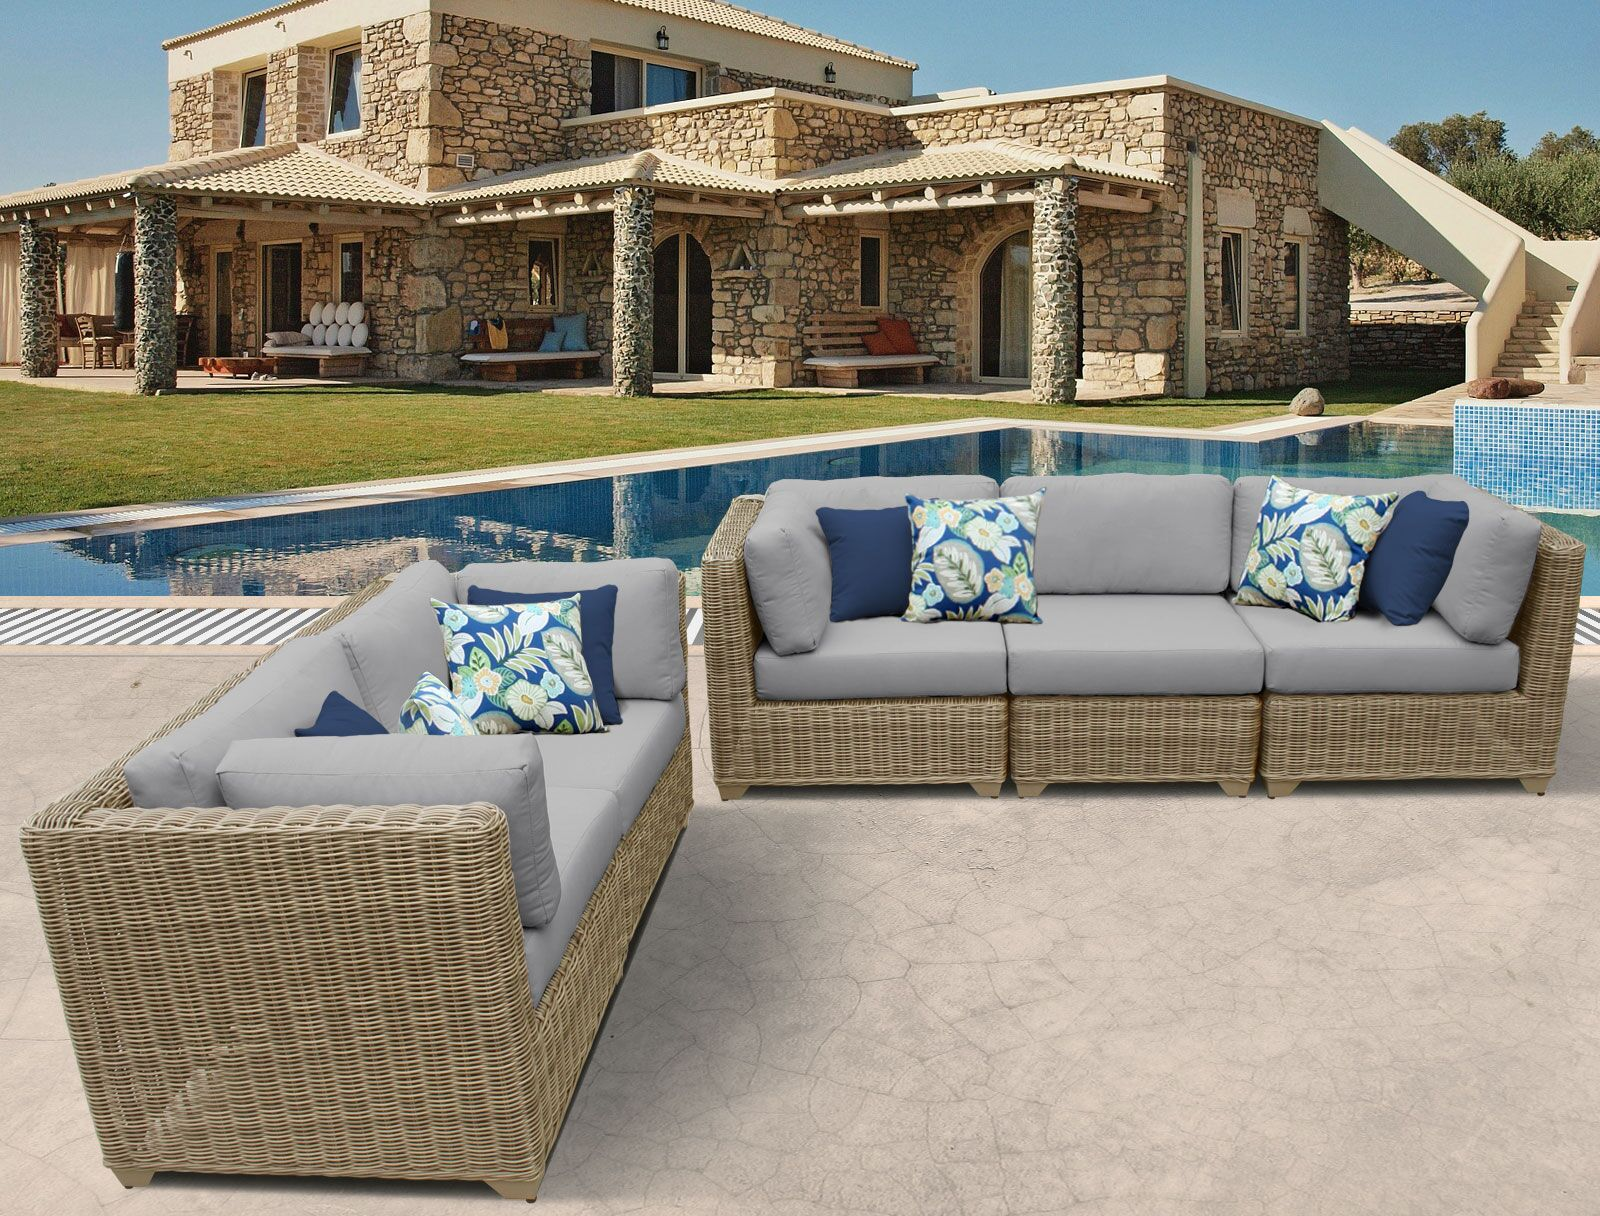 Cape Cod 5 Piece Sofa Set with Cushions Color: Gray